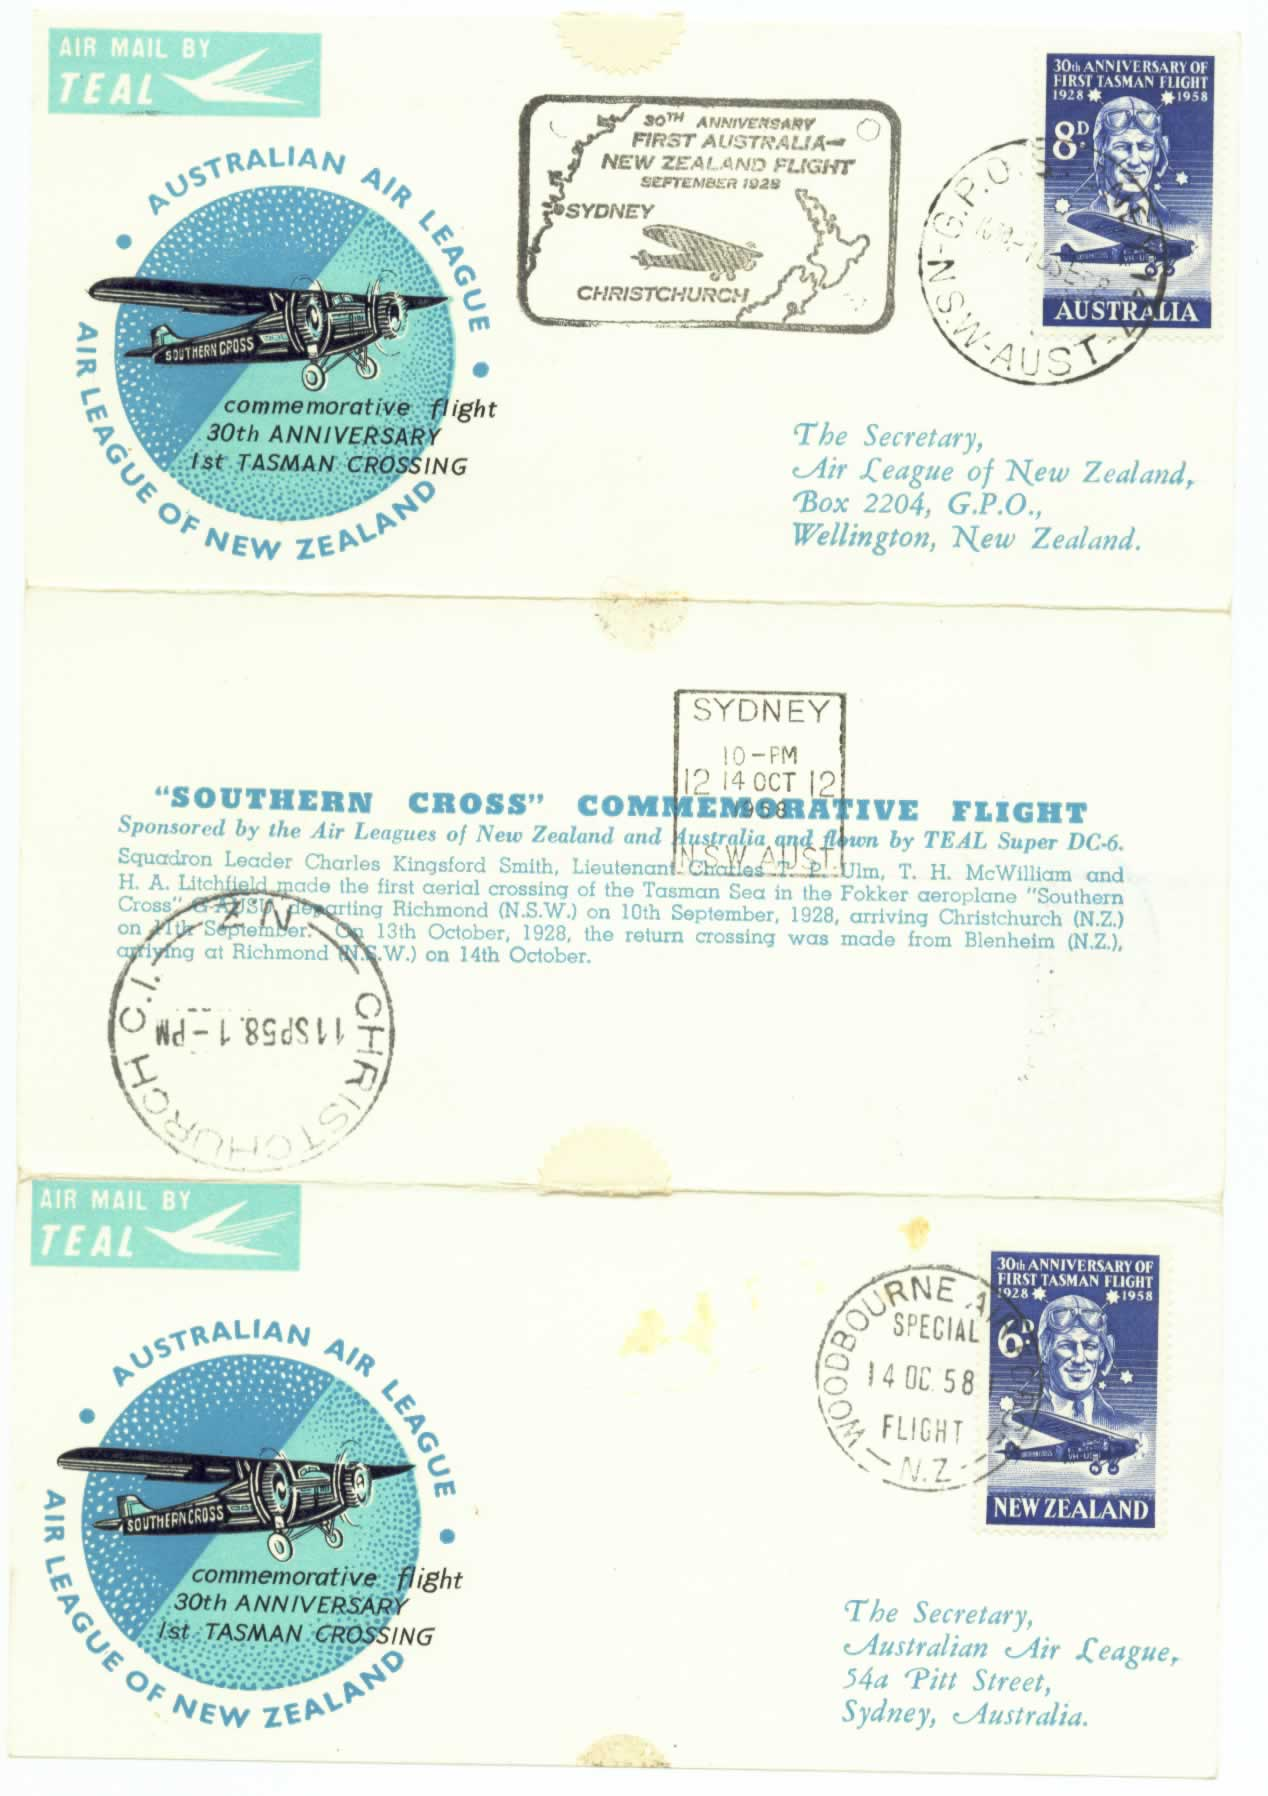 Air Leagues of New Zealand and Australia